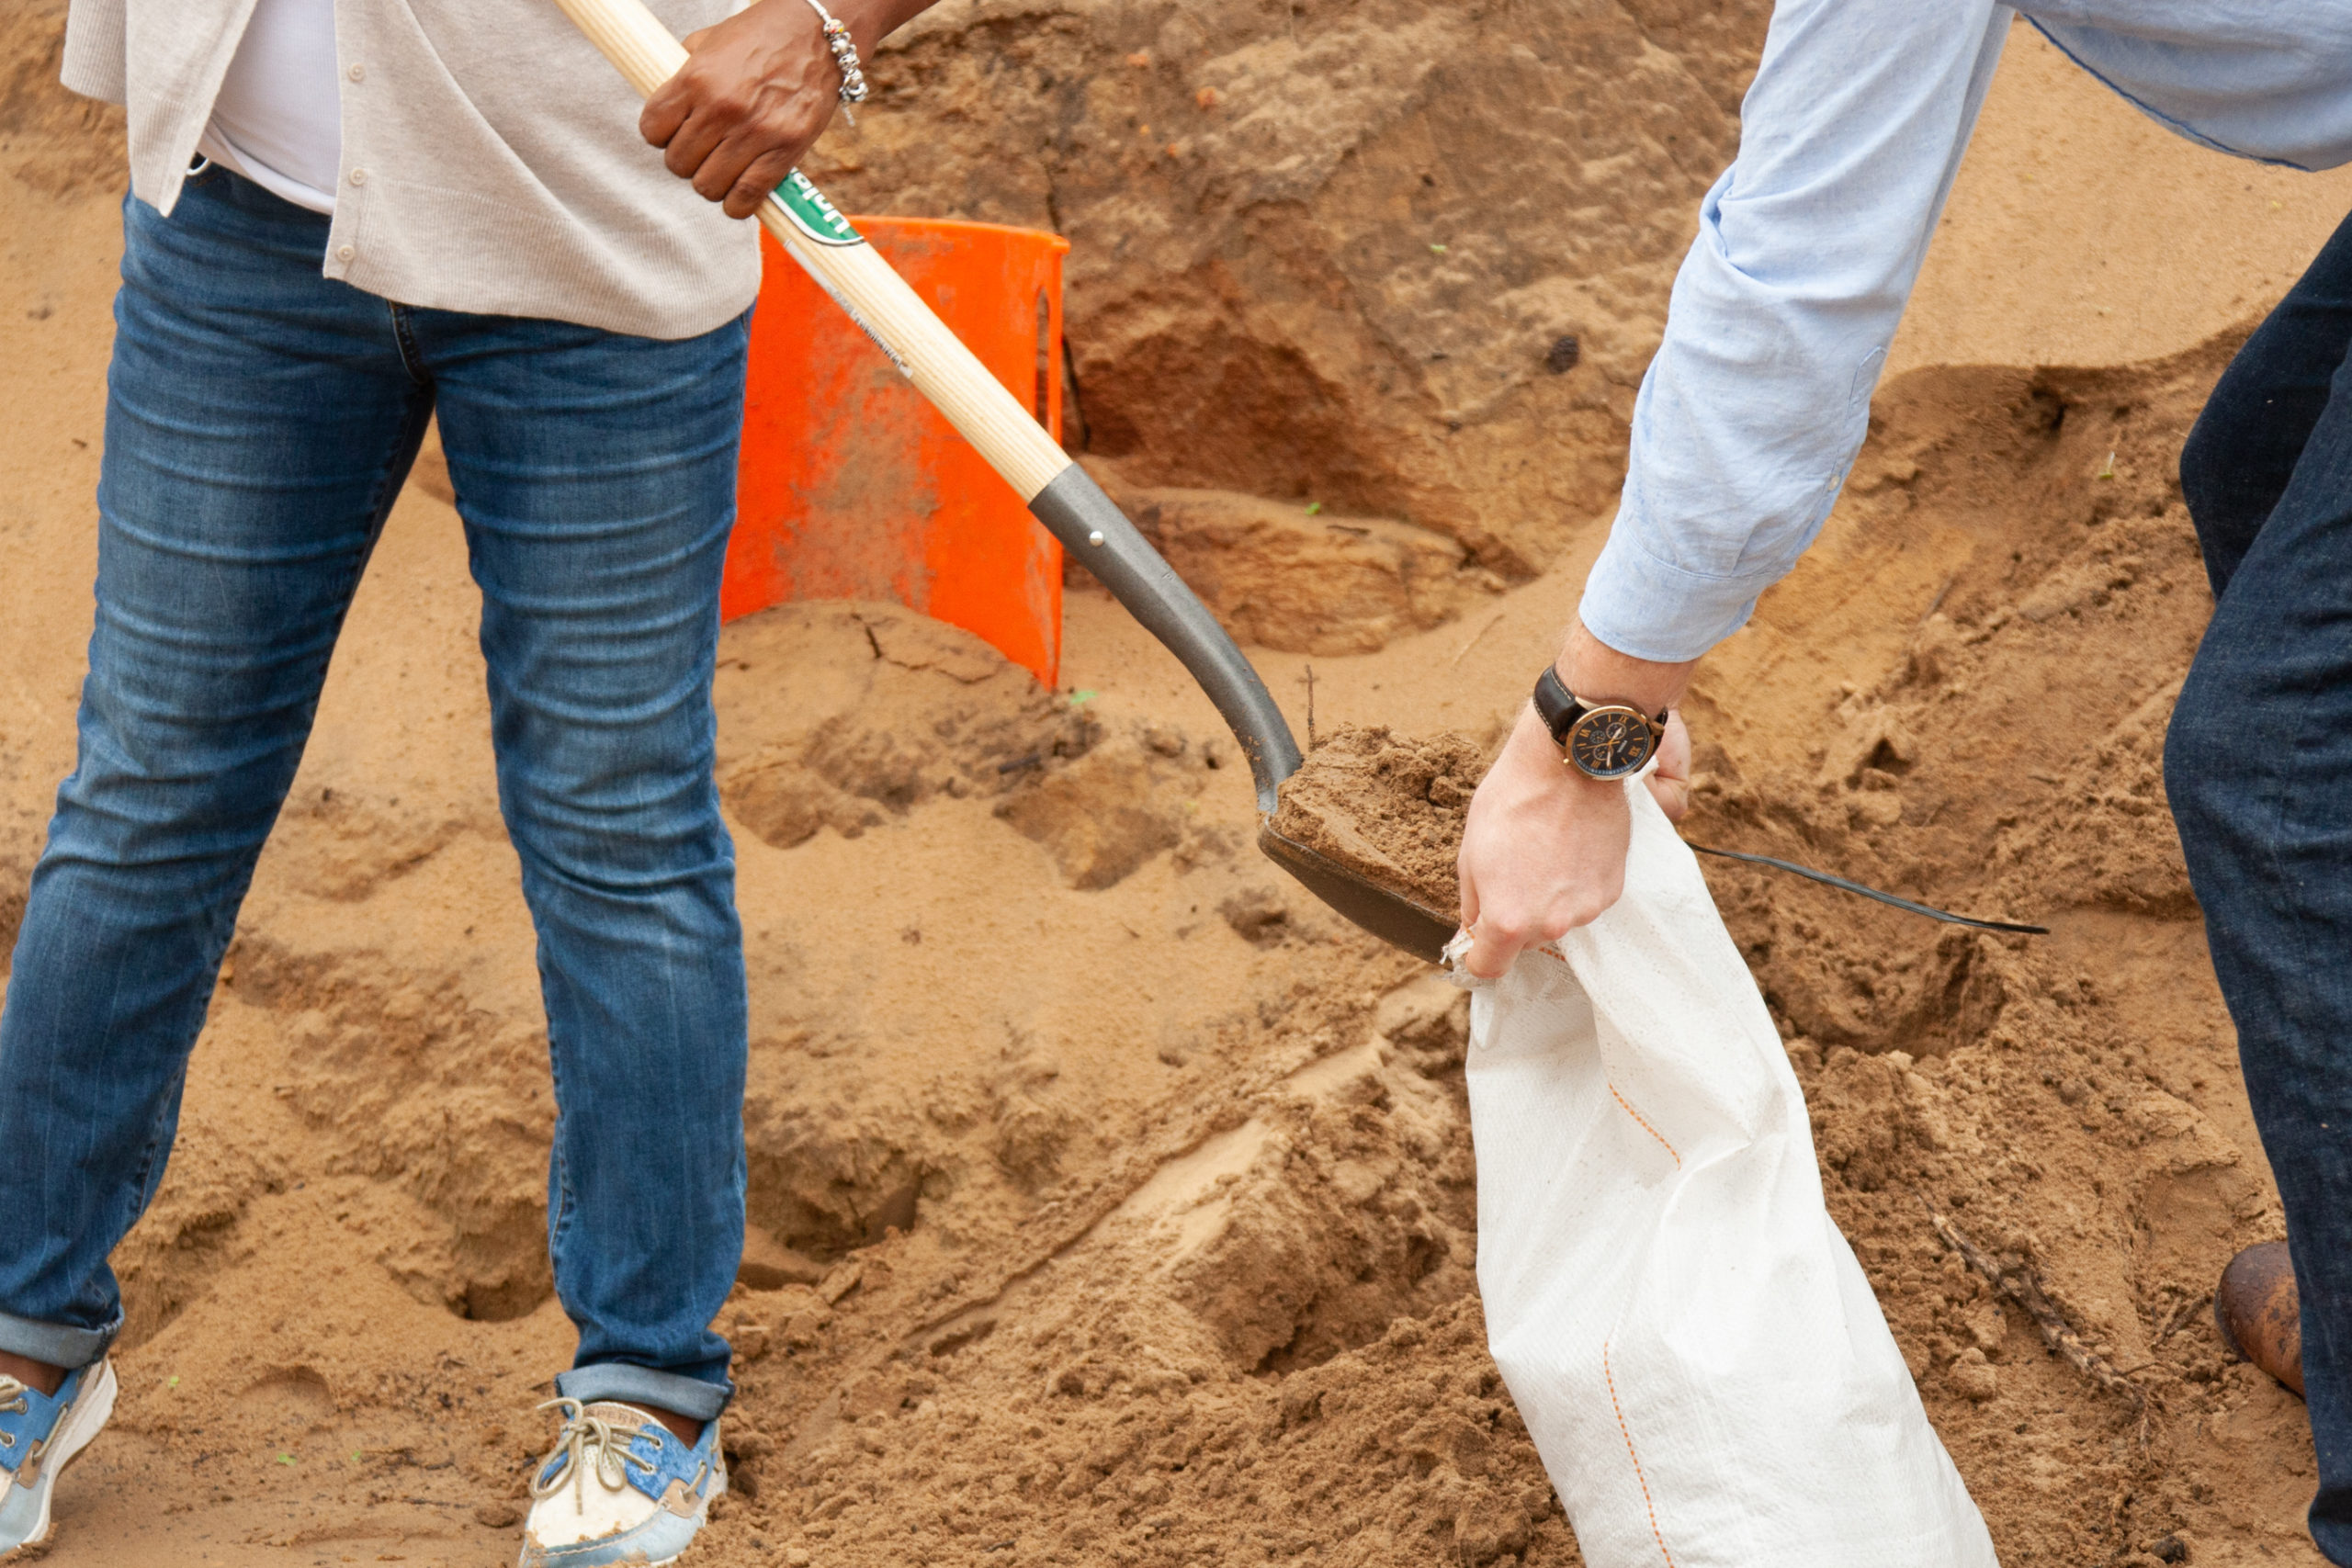 Two people shoveling sand into a bag to create a sandbag